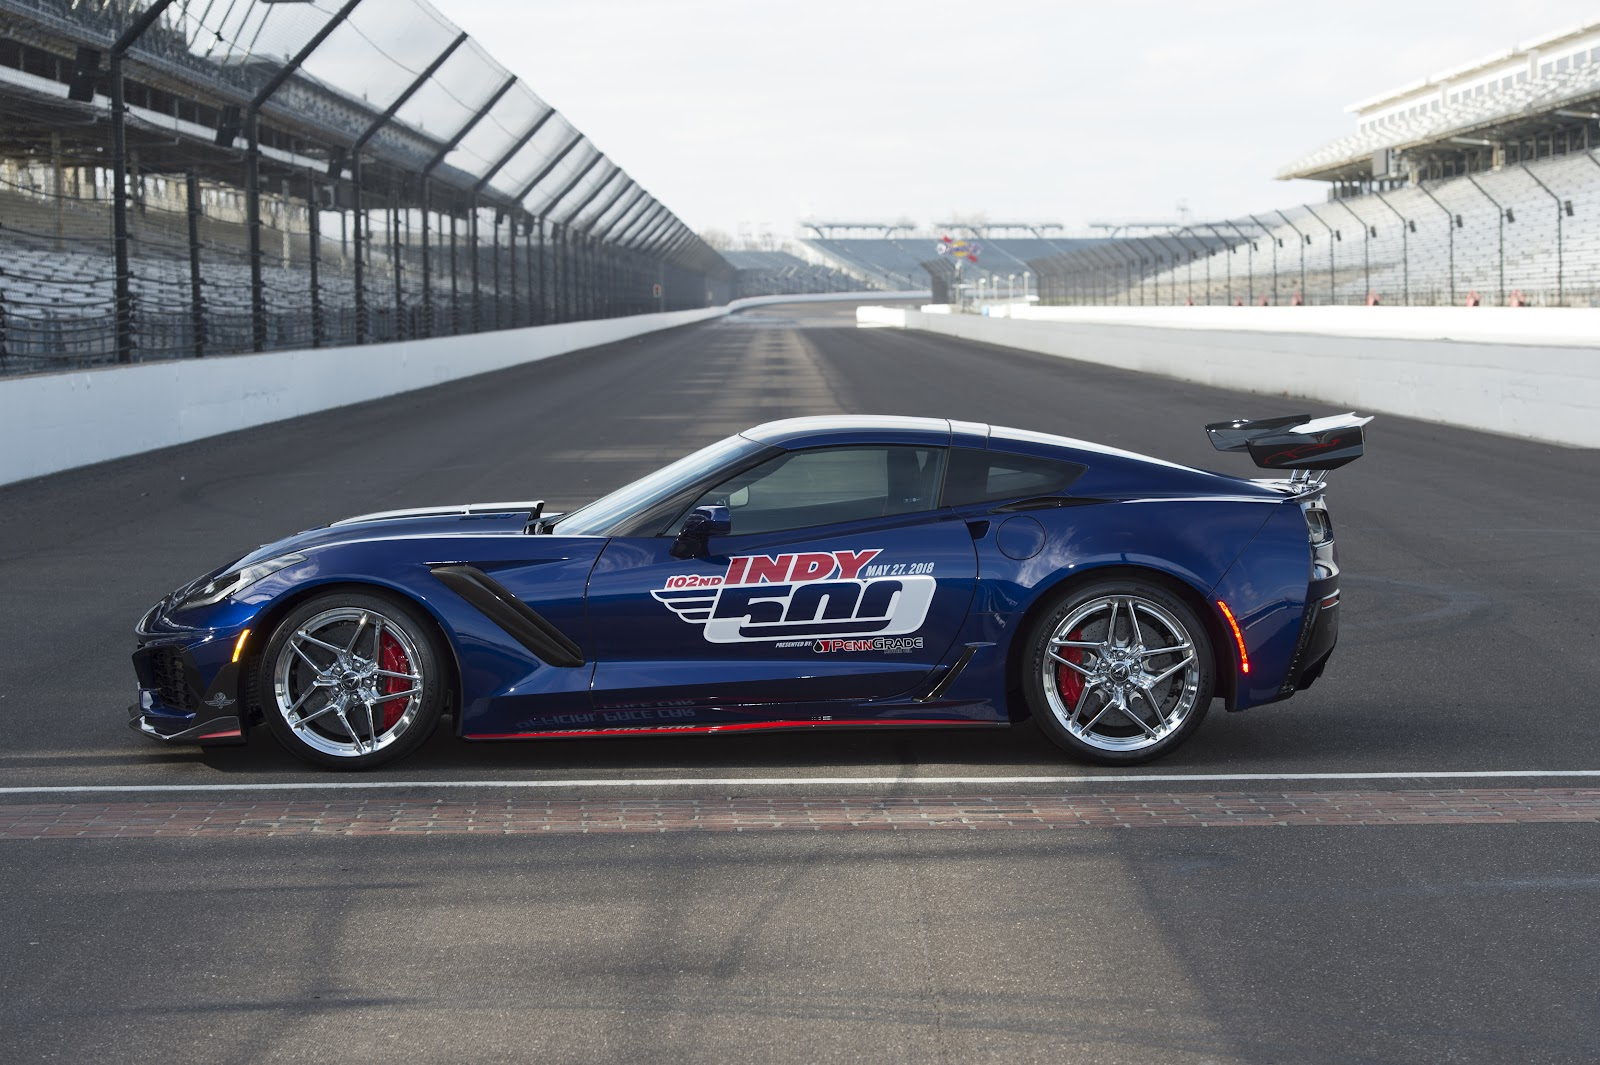 Image result for 2019 corvette zr1 Indy 500 pace car